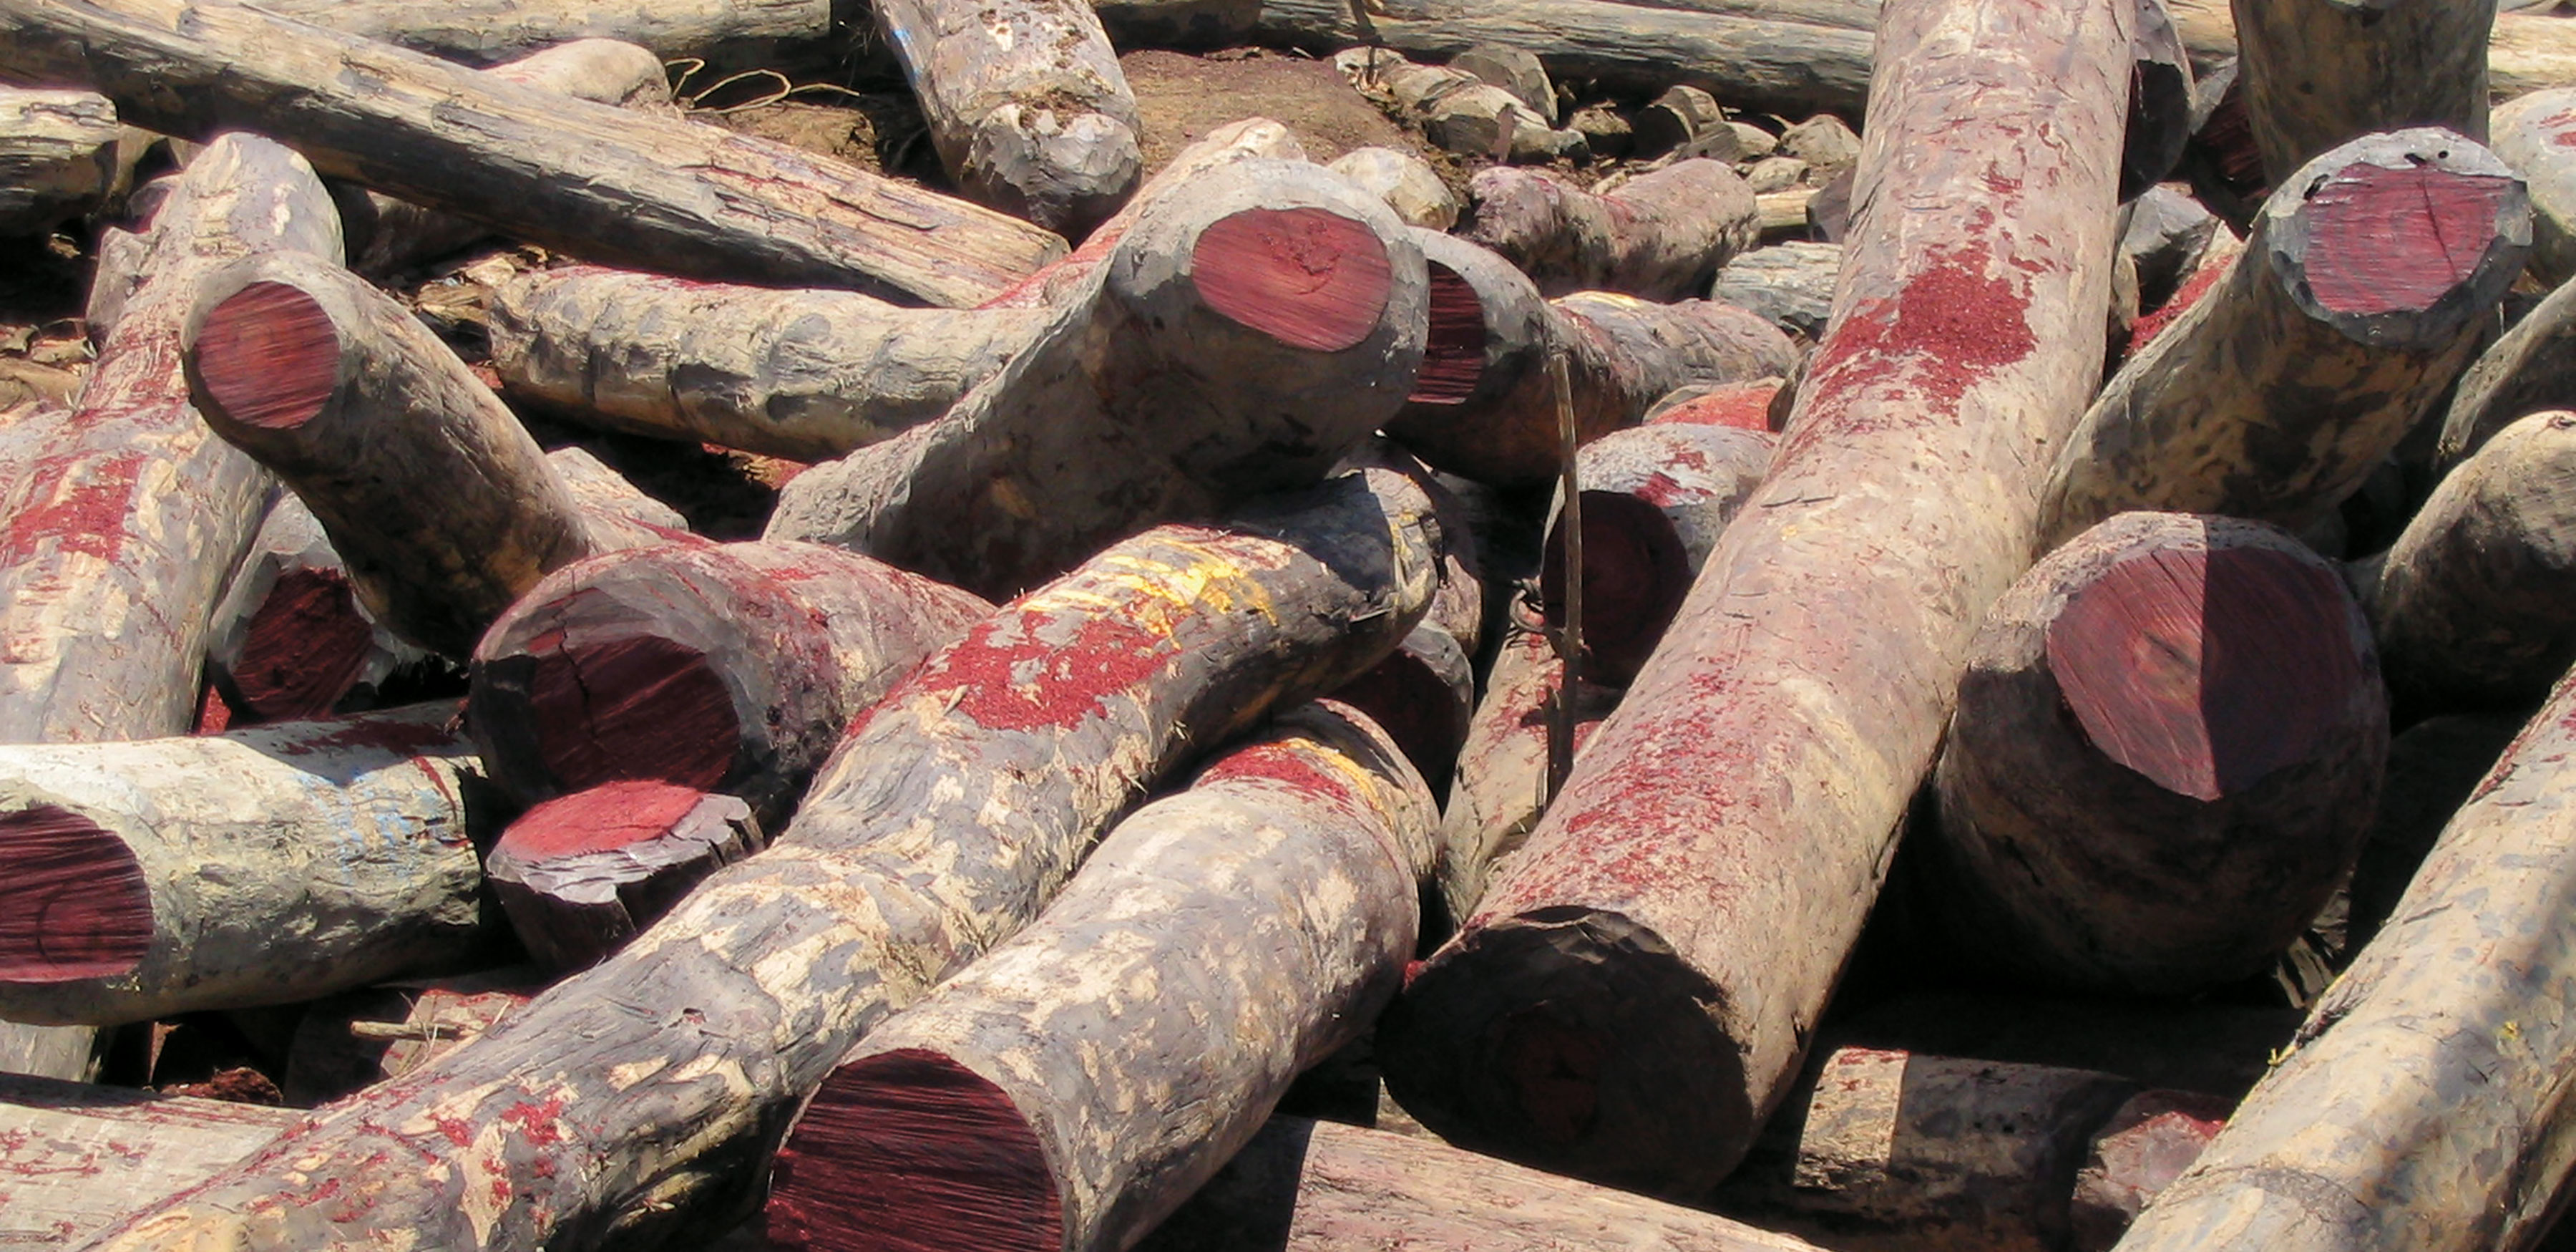 A pile of cut up rosewood logs